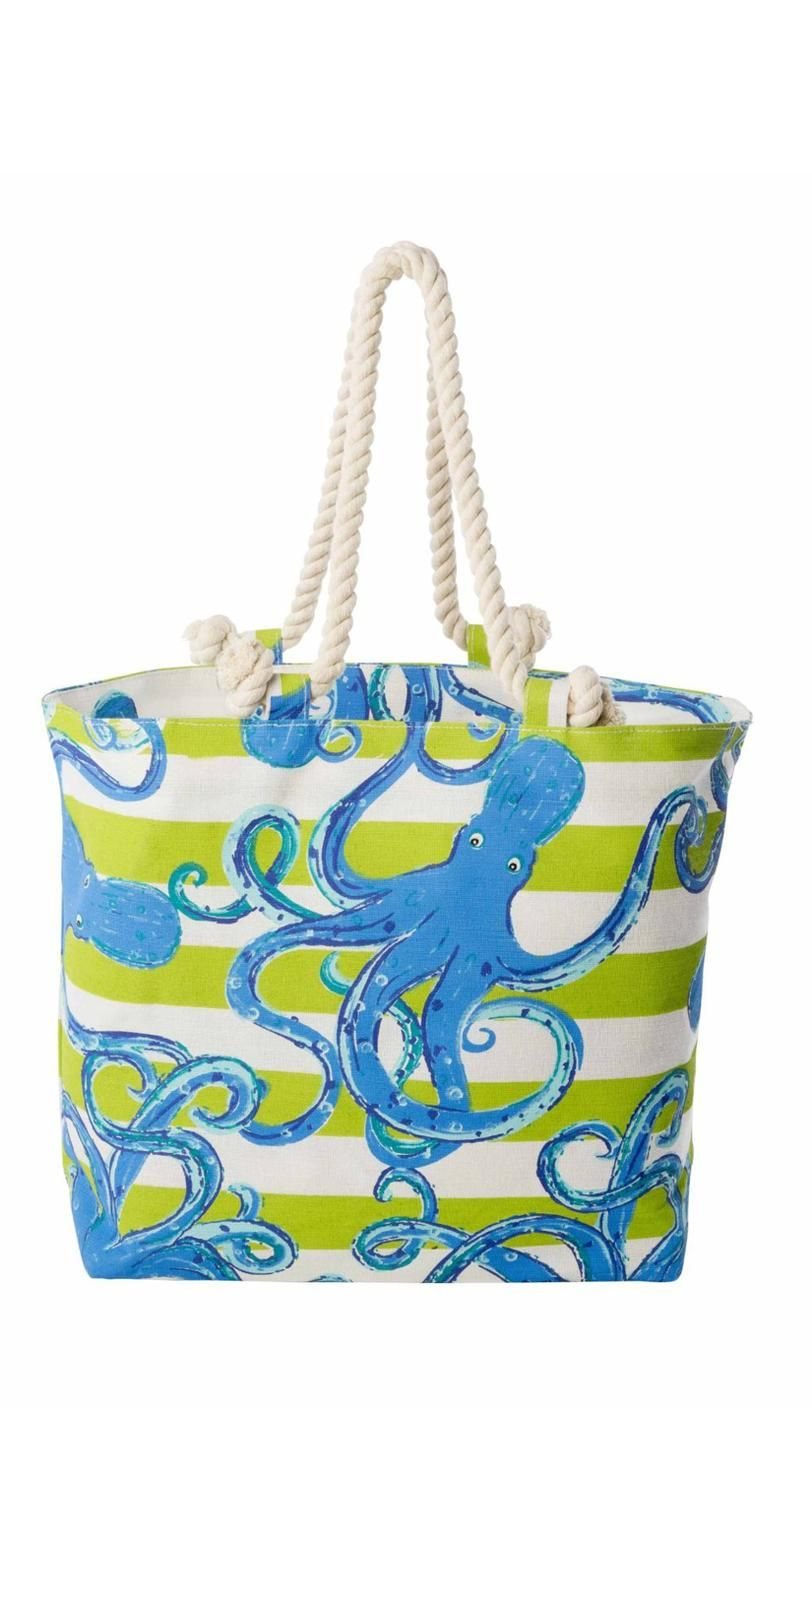 Mud Pie Octopus Nautical Tote Bag 8613032BL | Your Bag Board ...